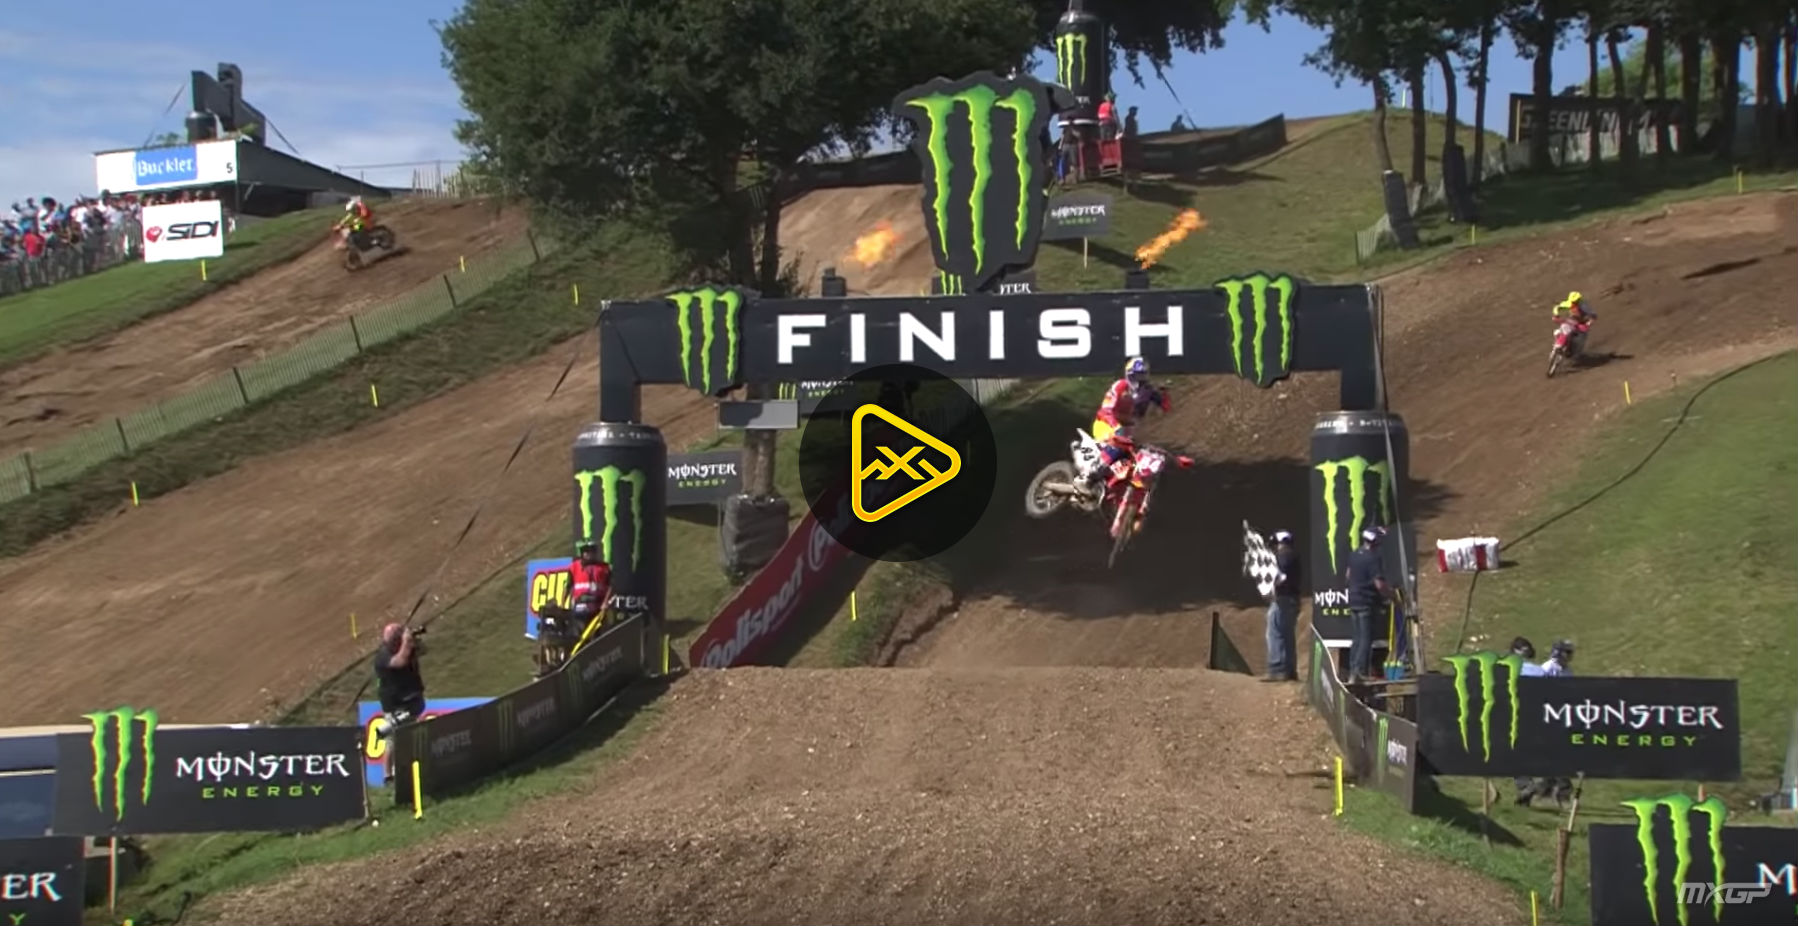 Qualifying Highlights at 2018 MXGP of France